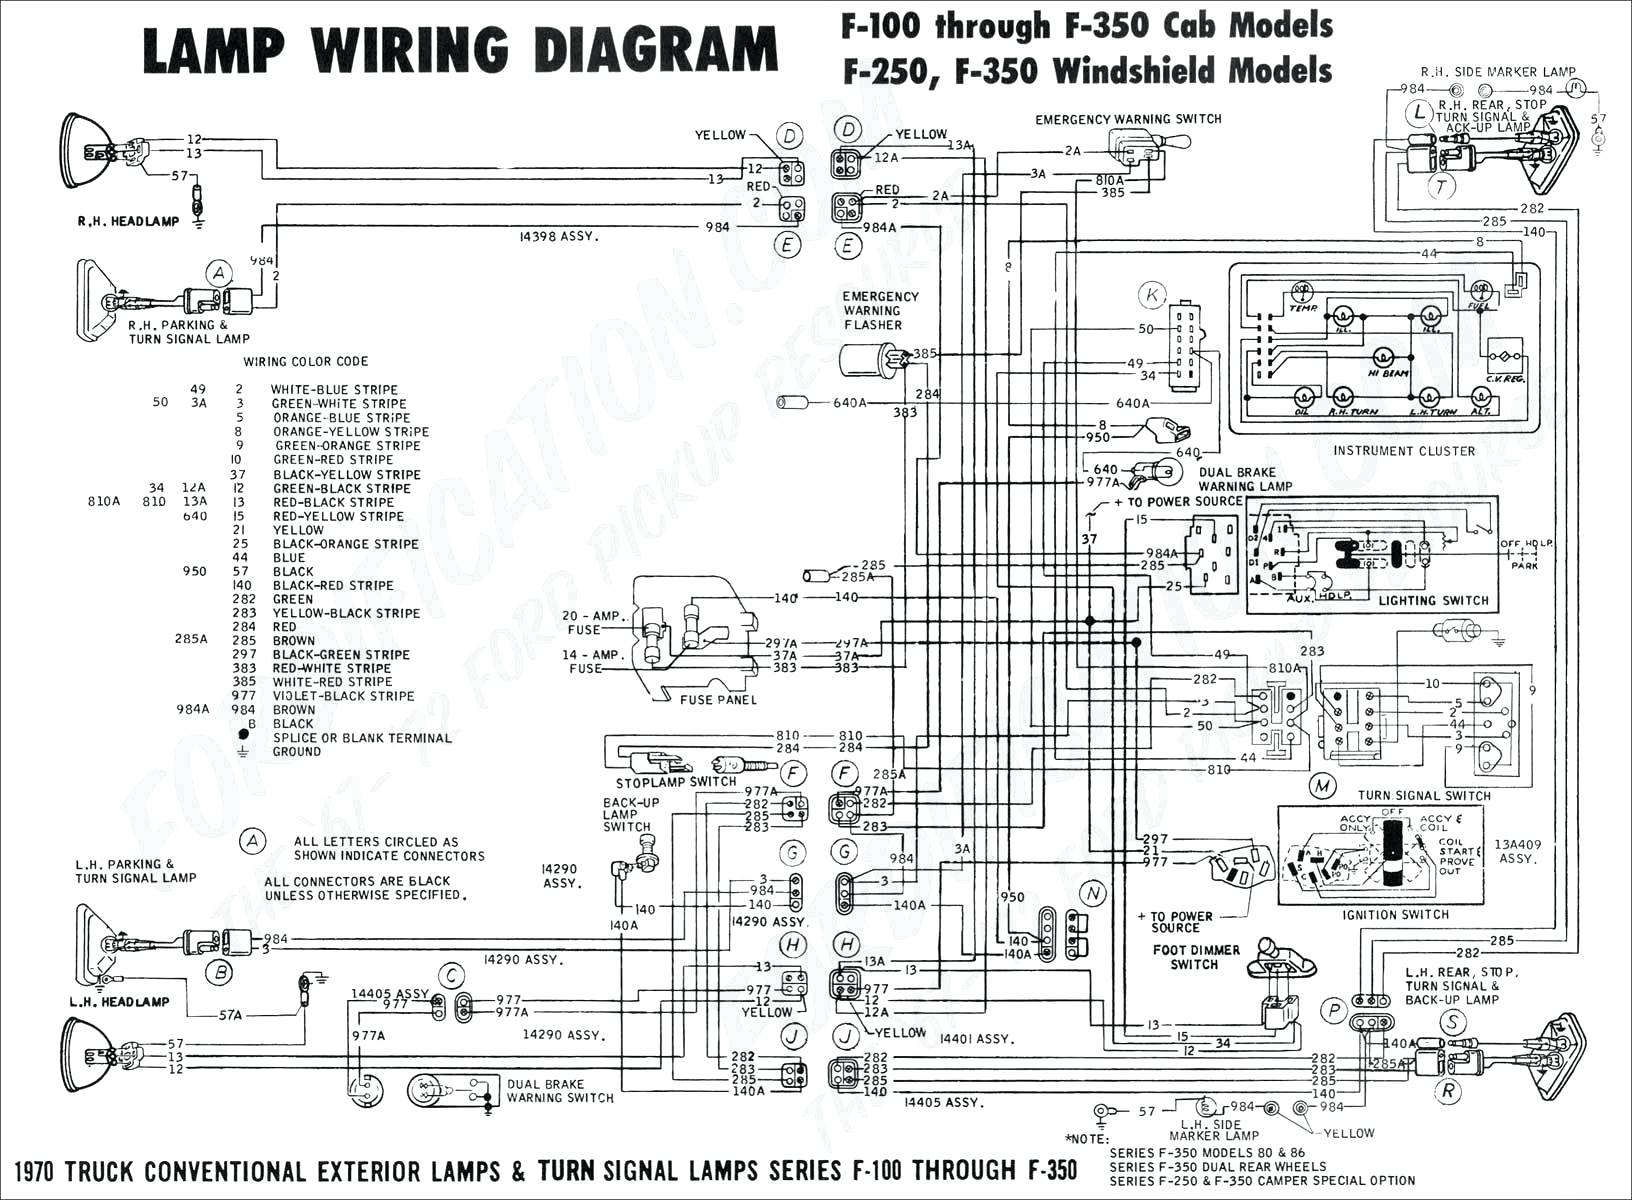 hight resolution of 150 ac diagram 7 3 glow plug relay 2002 ford f550 fuse panel diagram 2007 ford f 150 ac diagram 7 3 glow plug relay 2002 ford f550 fuse